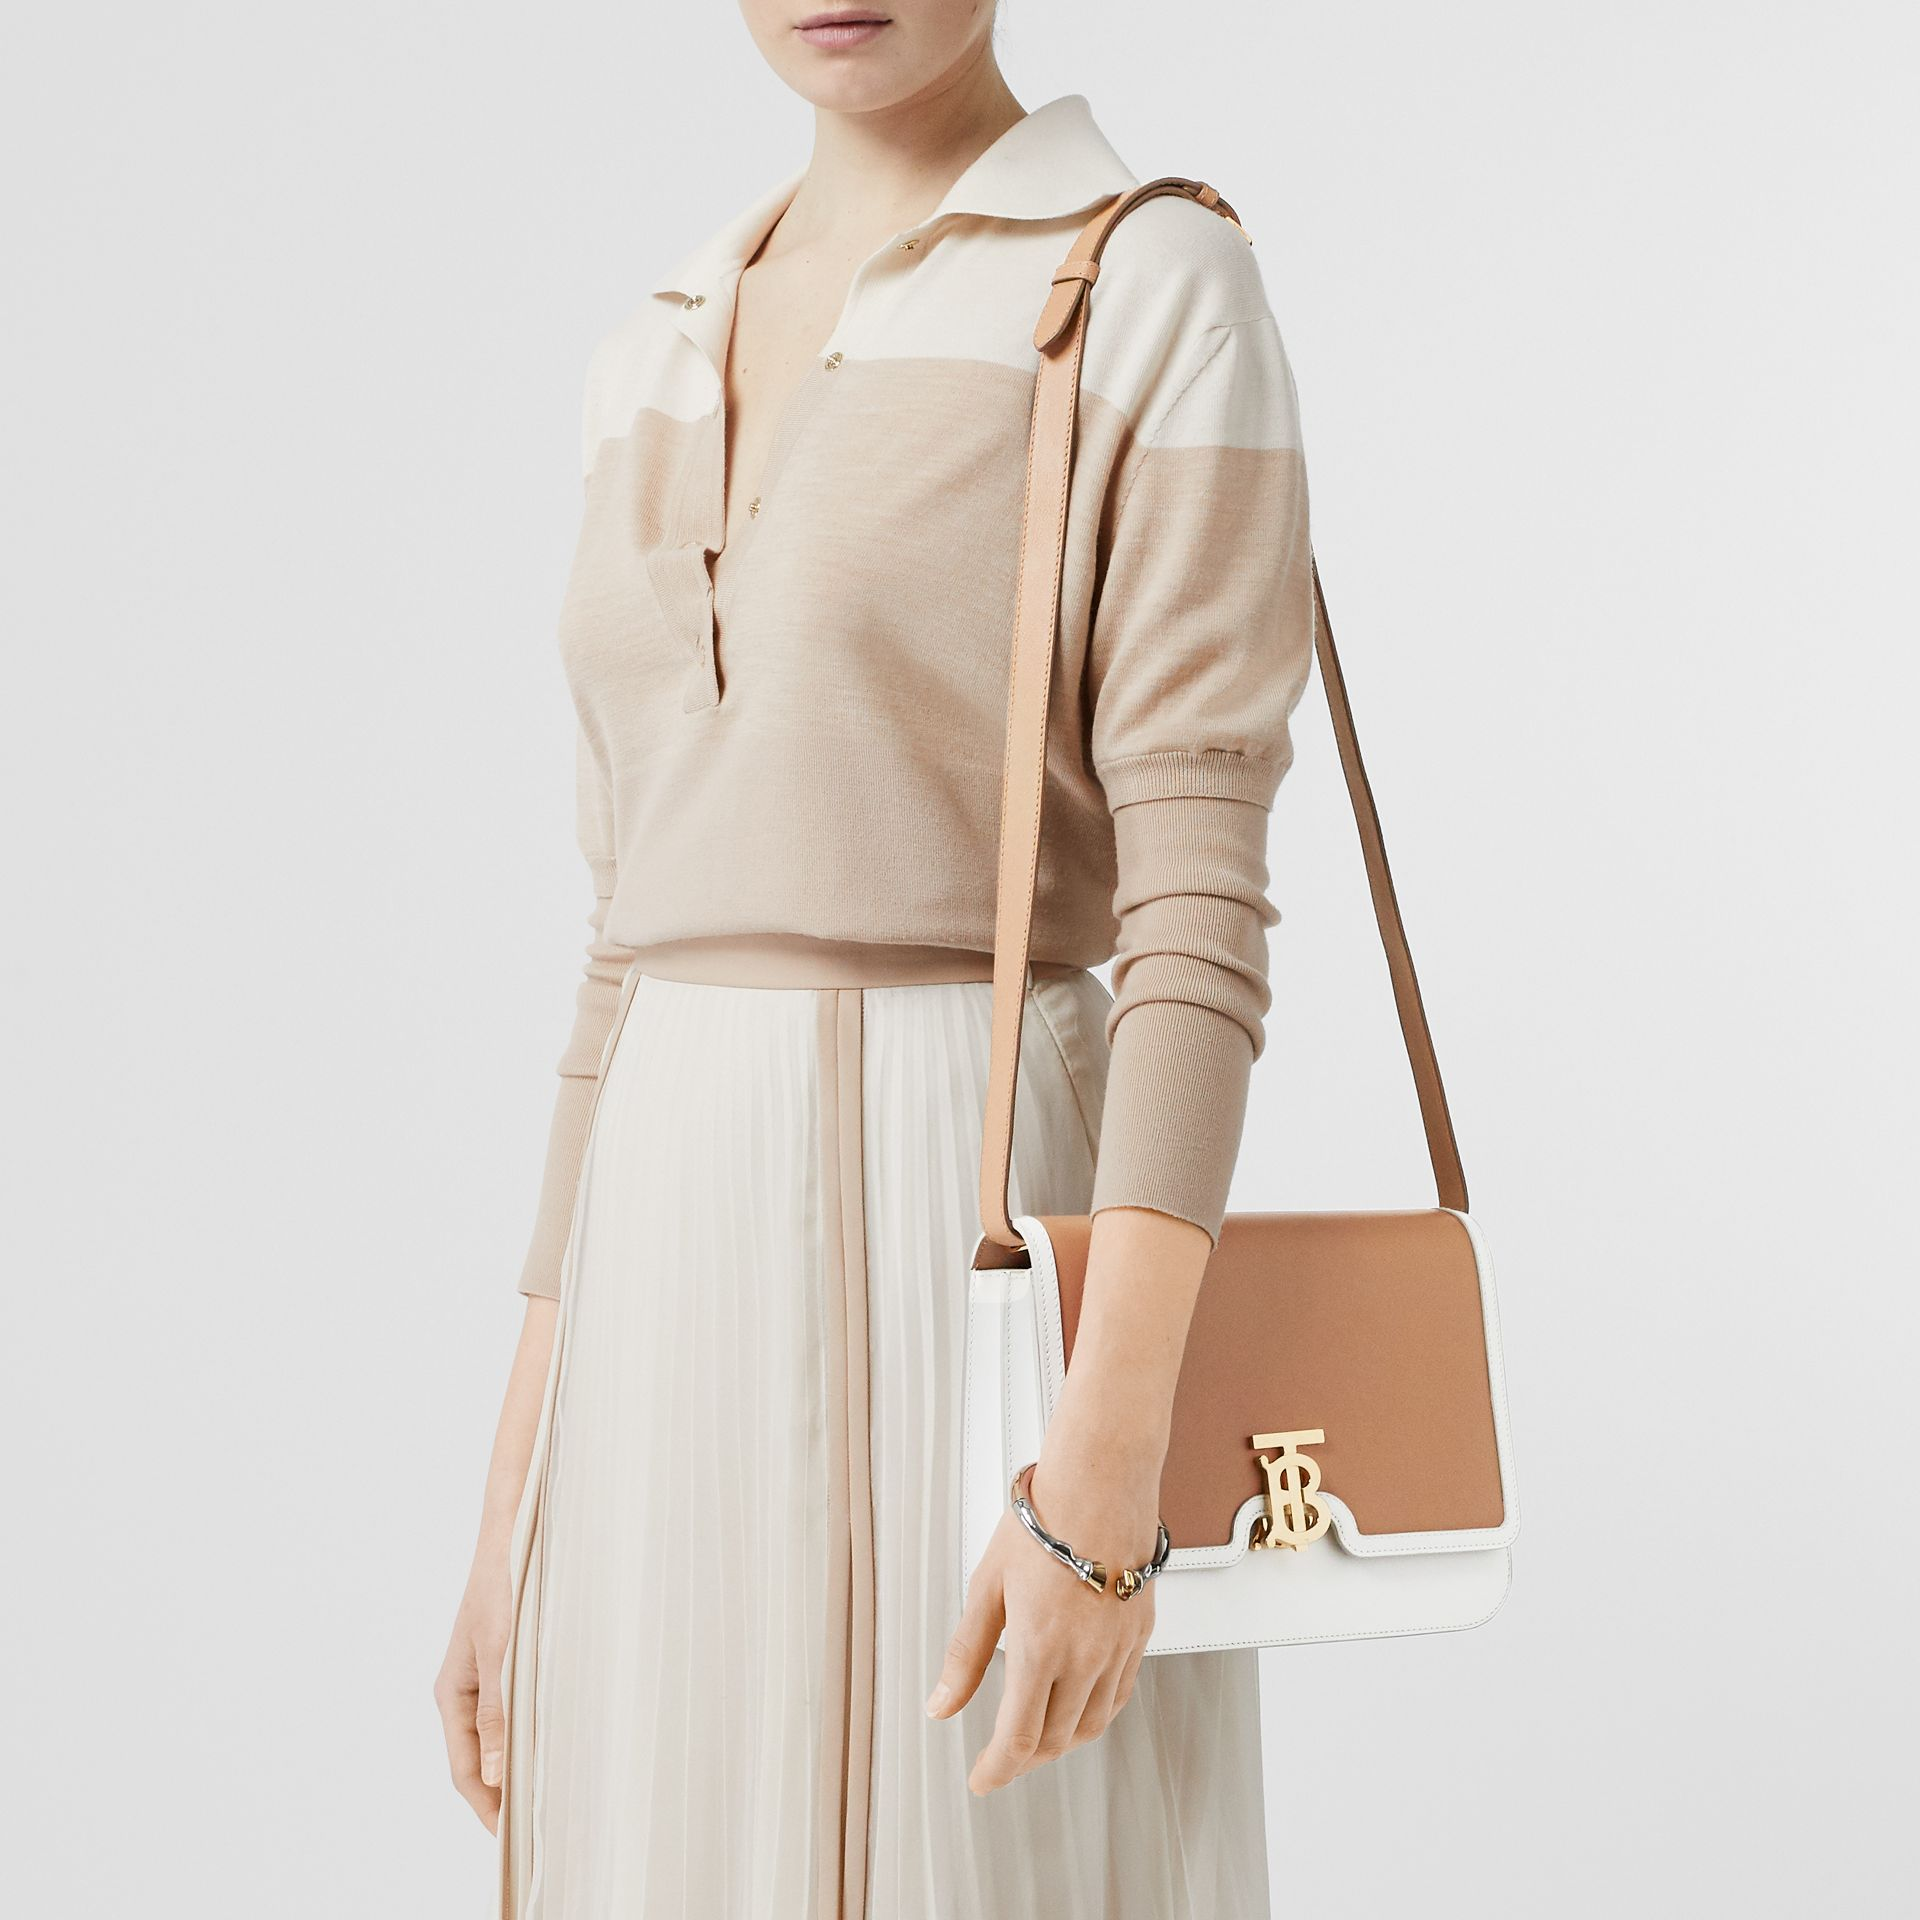 Medium Two-tone Leather TB Bag in Chalk White/light Camel - Women | Burberry - gallery image 2